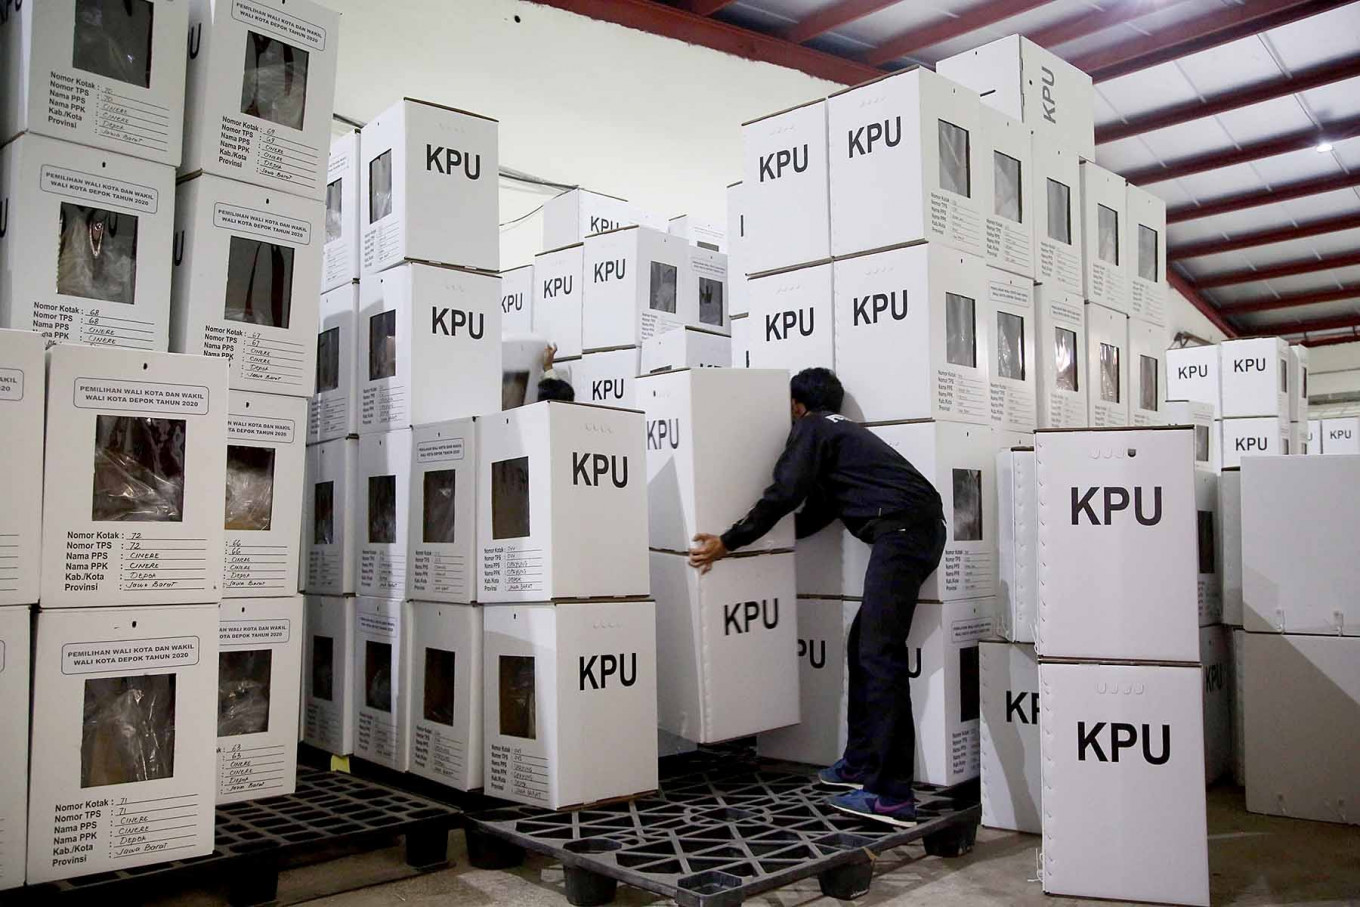 Workers from the Depok General Elections Commission (KPU) stack ballot boxes at a warehouse in Cimanggis district, Depok, West Java, on Nov. 25. The Depok KPU has started distributing supplies throughout the city in preparation for the 2020 regional elections on Dec 9. JP/P.J.Leo